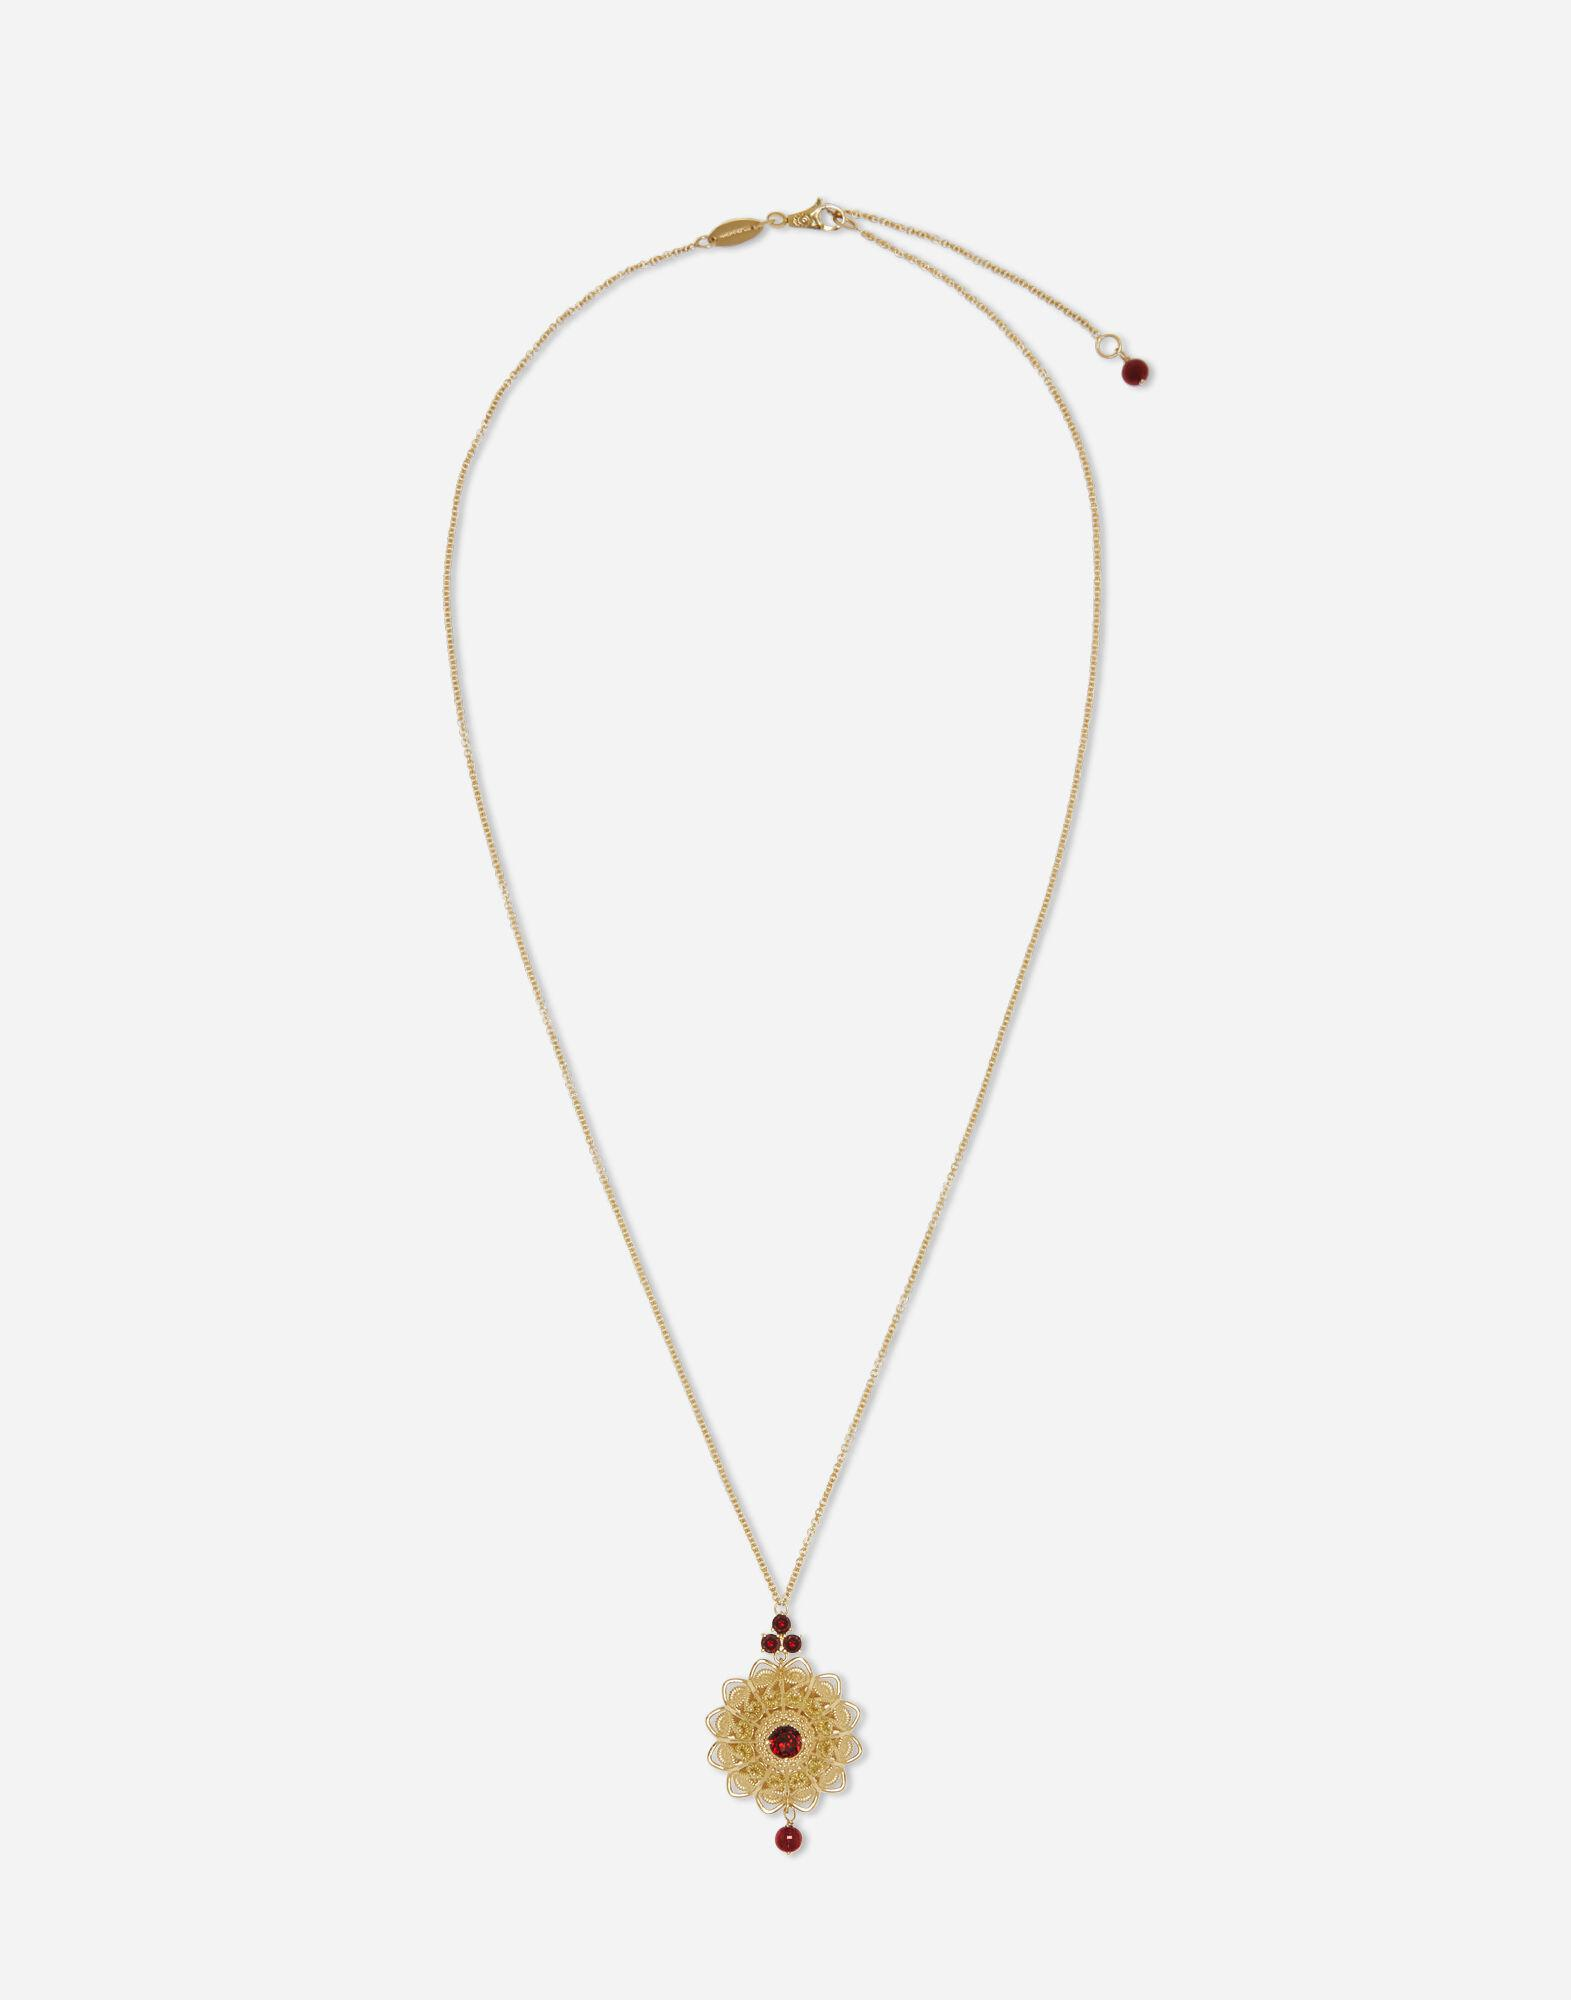 Pizzo pendant in yellow gold and rhodolite garnets